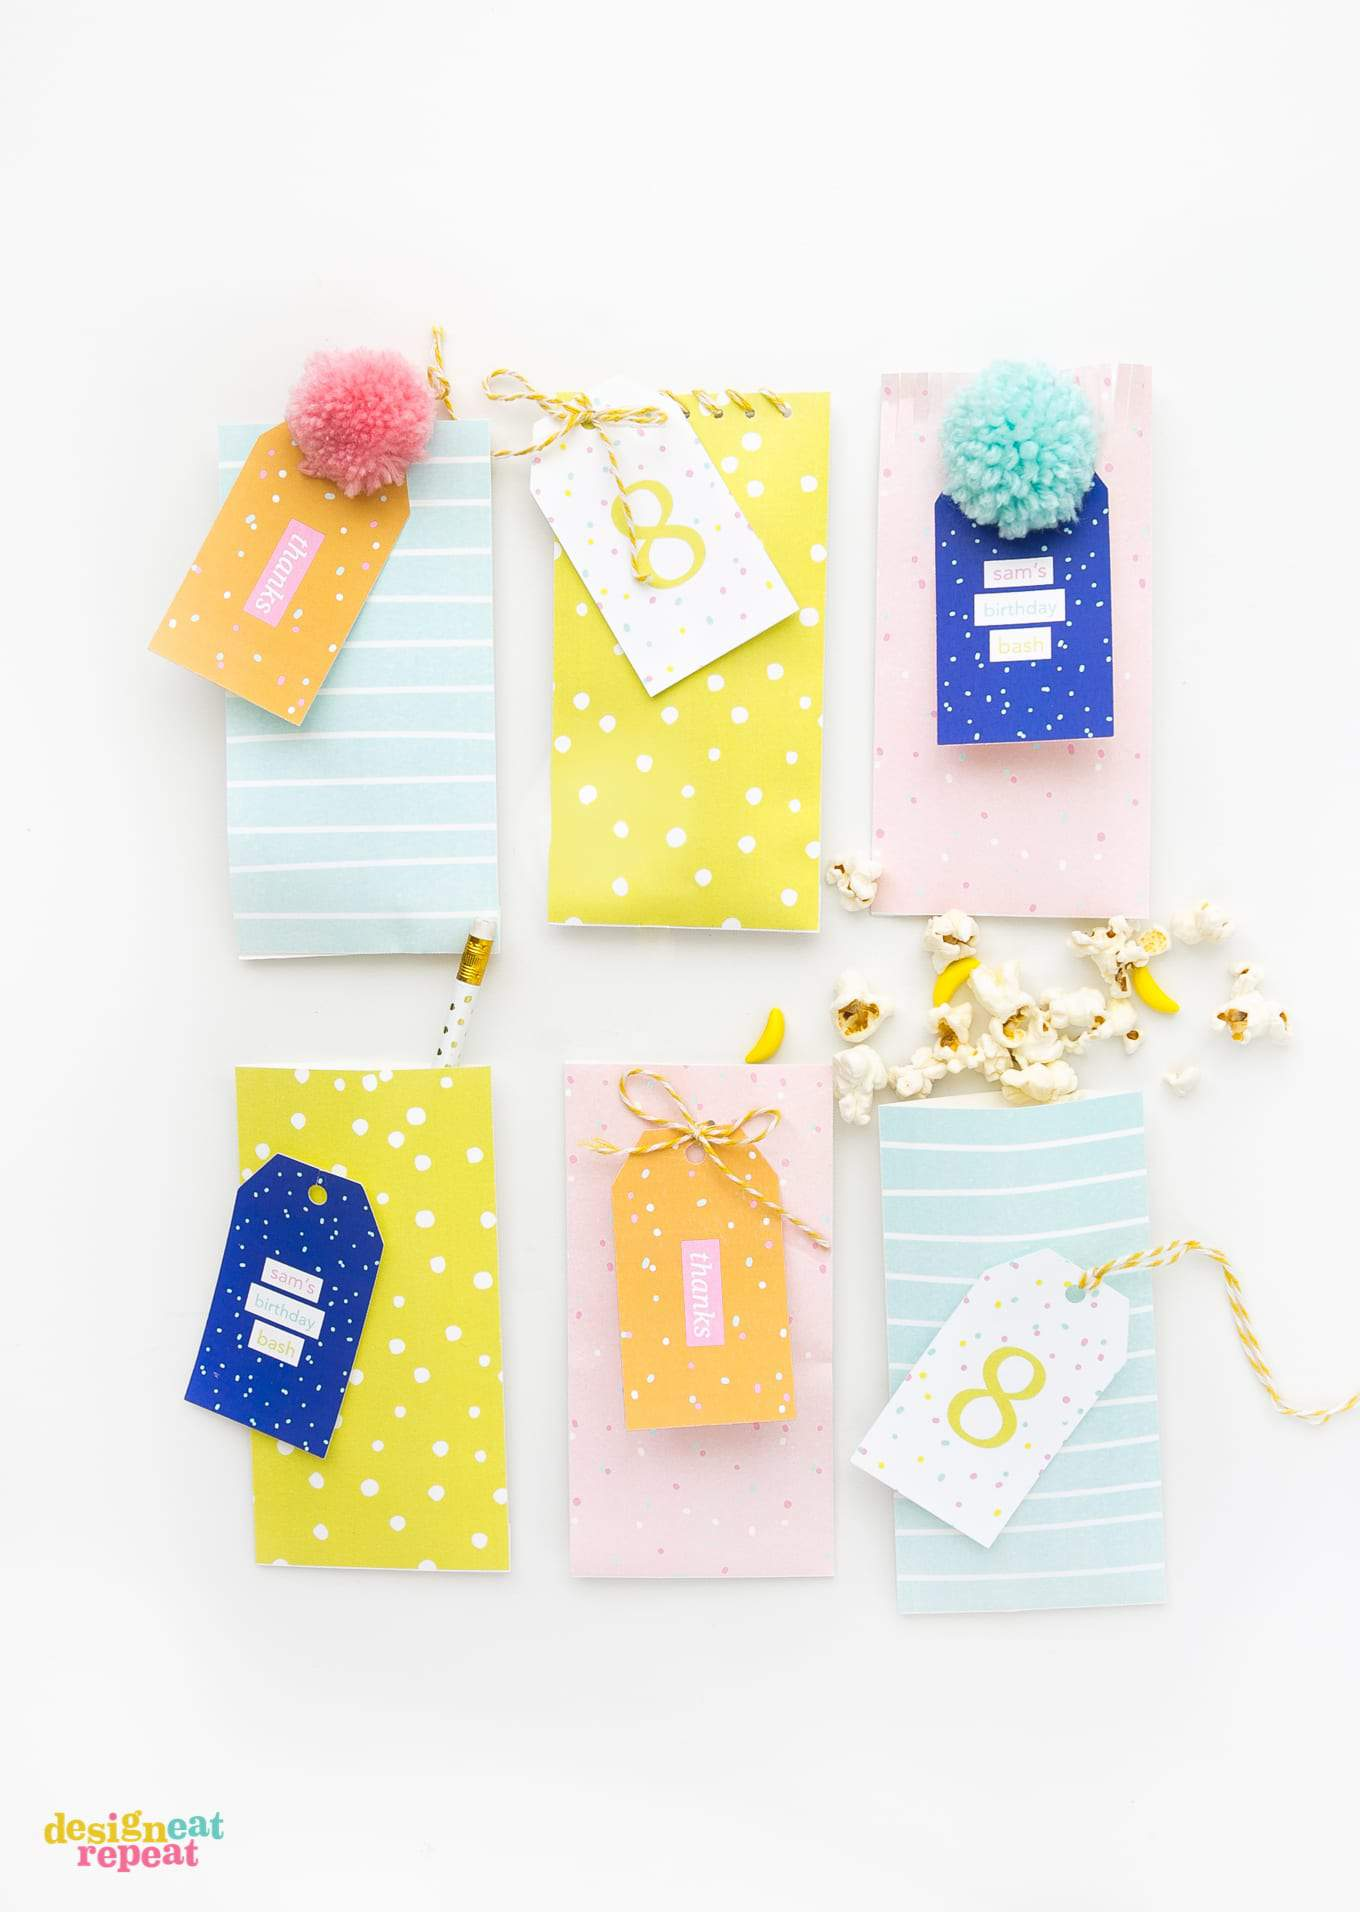 Download these printable party favor bags and fill with candy & trinkets for the perfect birthday party favor or envelope!